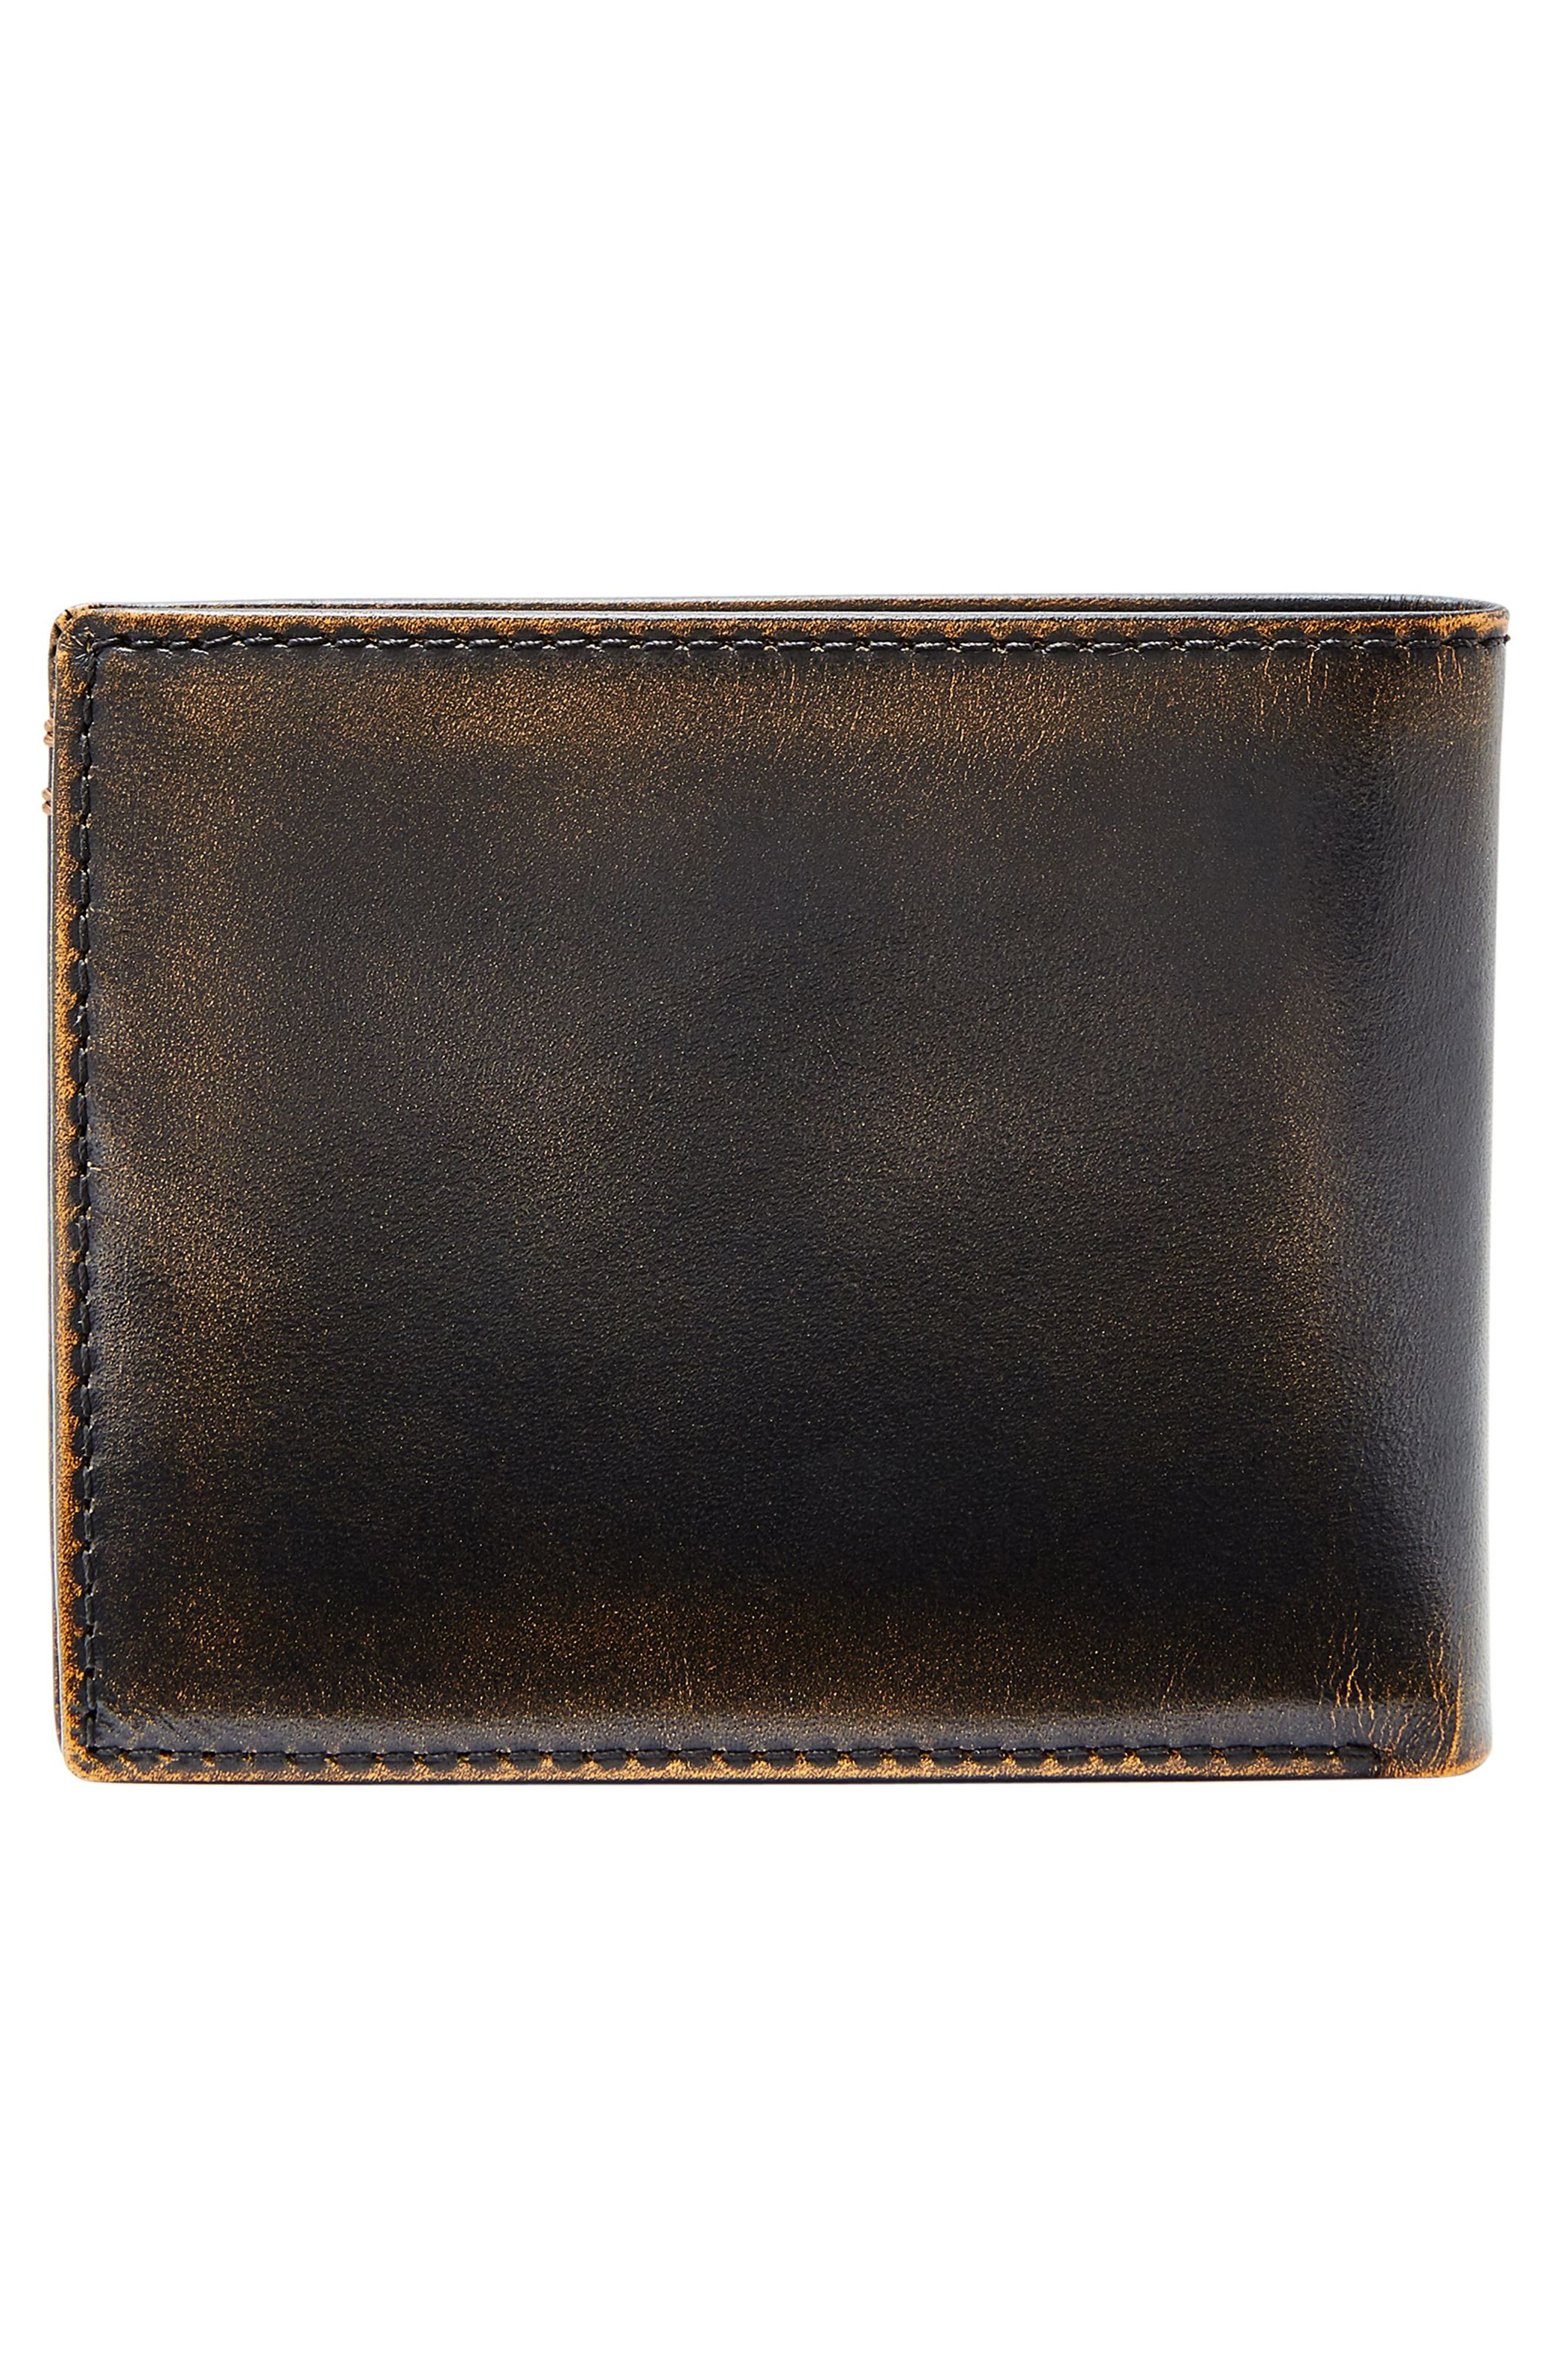 FOSSIL, Wade Leather Wallet, Alternate thumbnail 4, color, BLACK